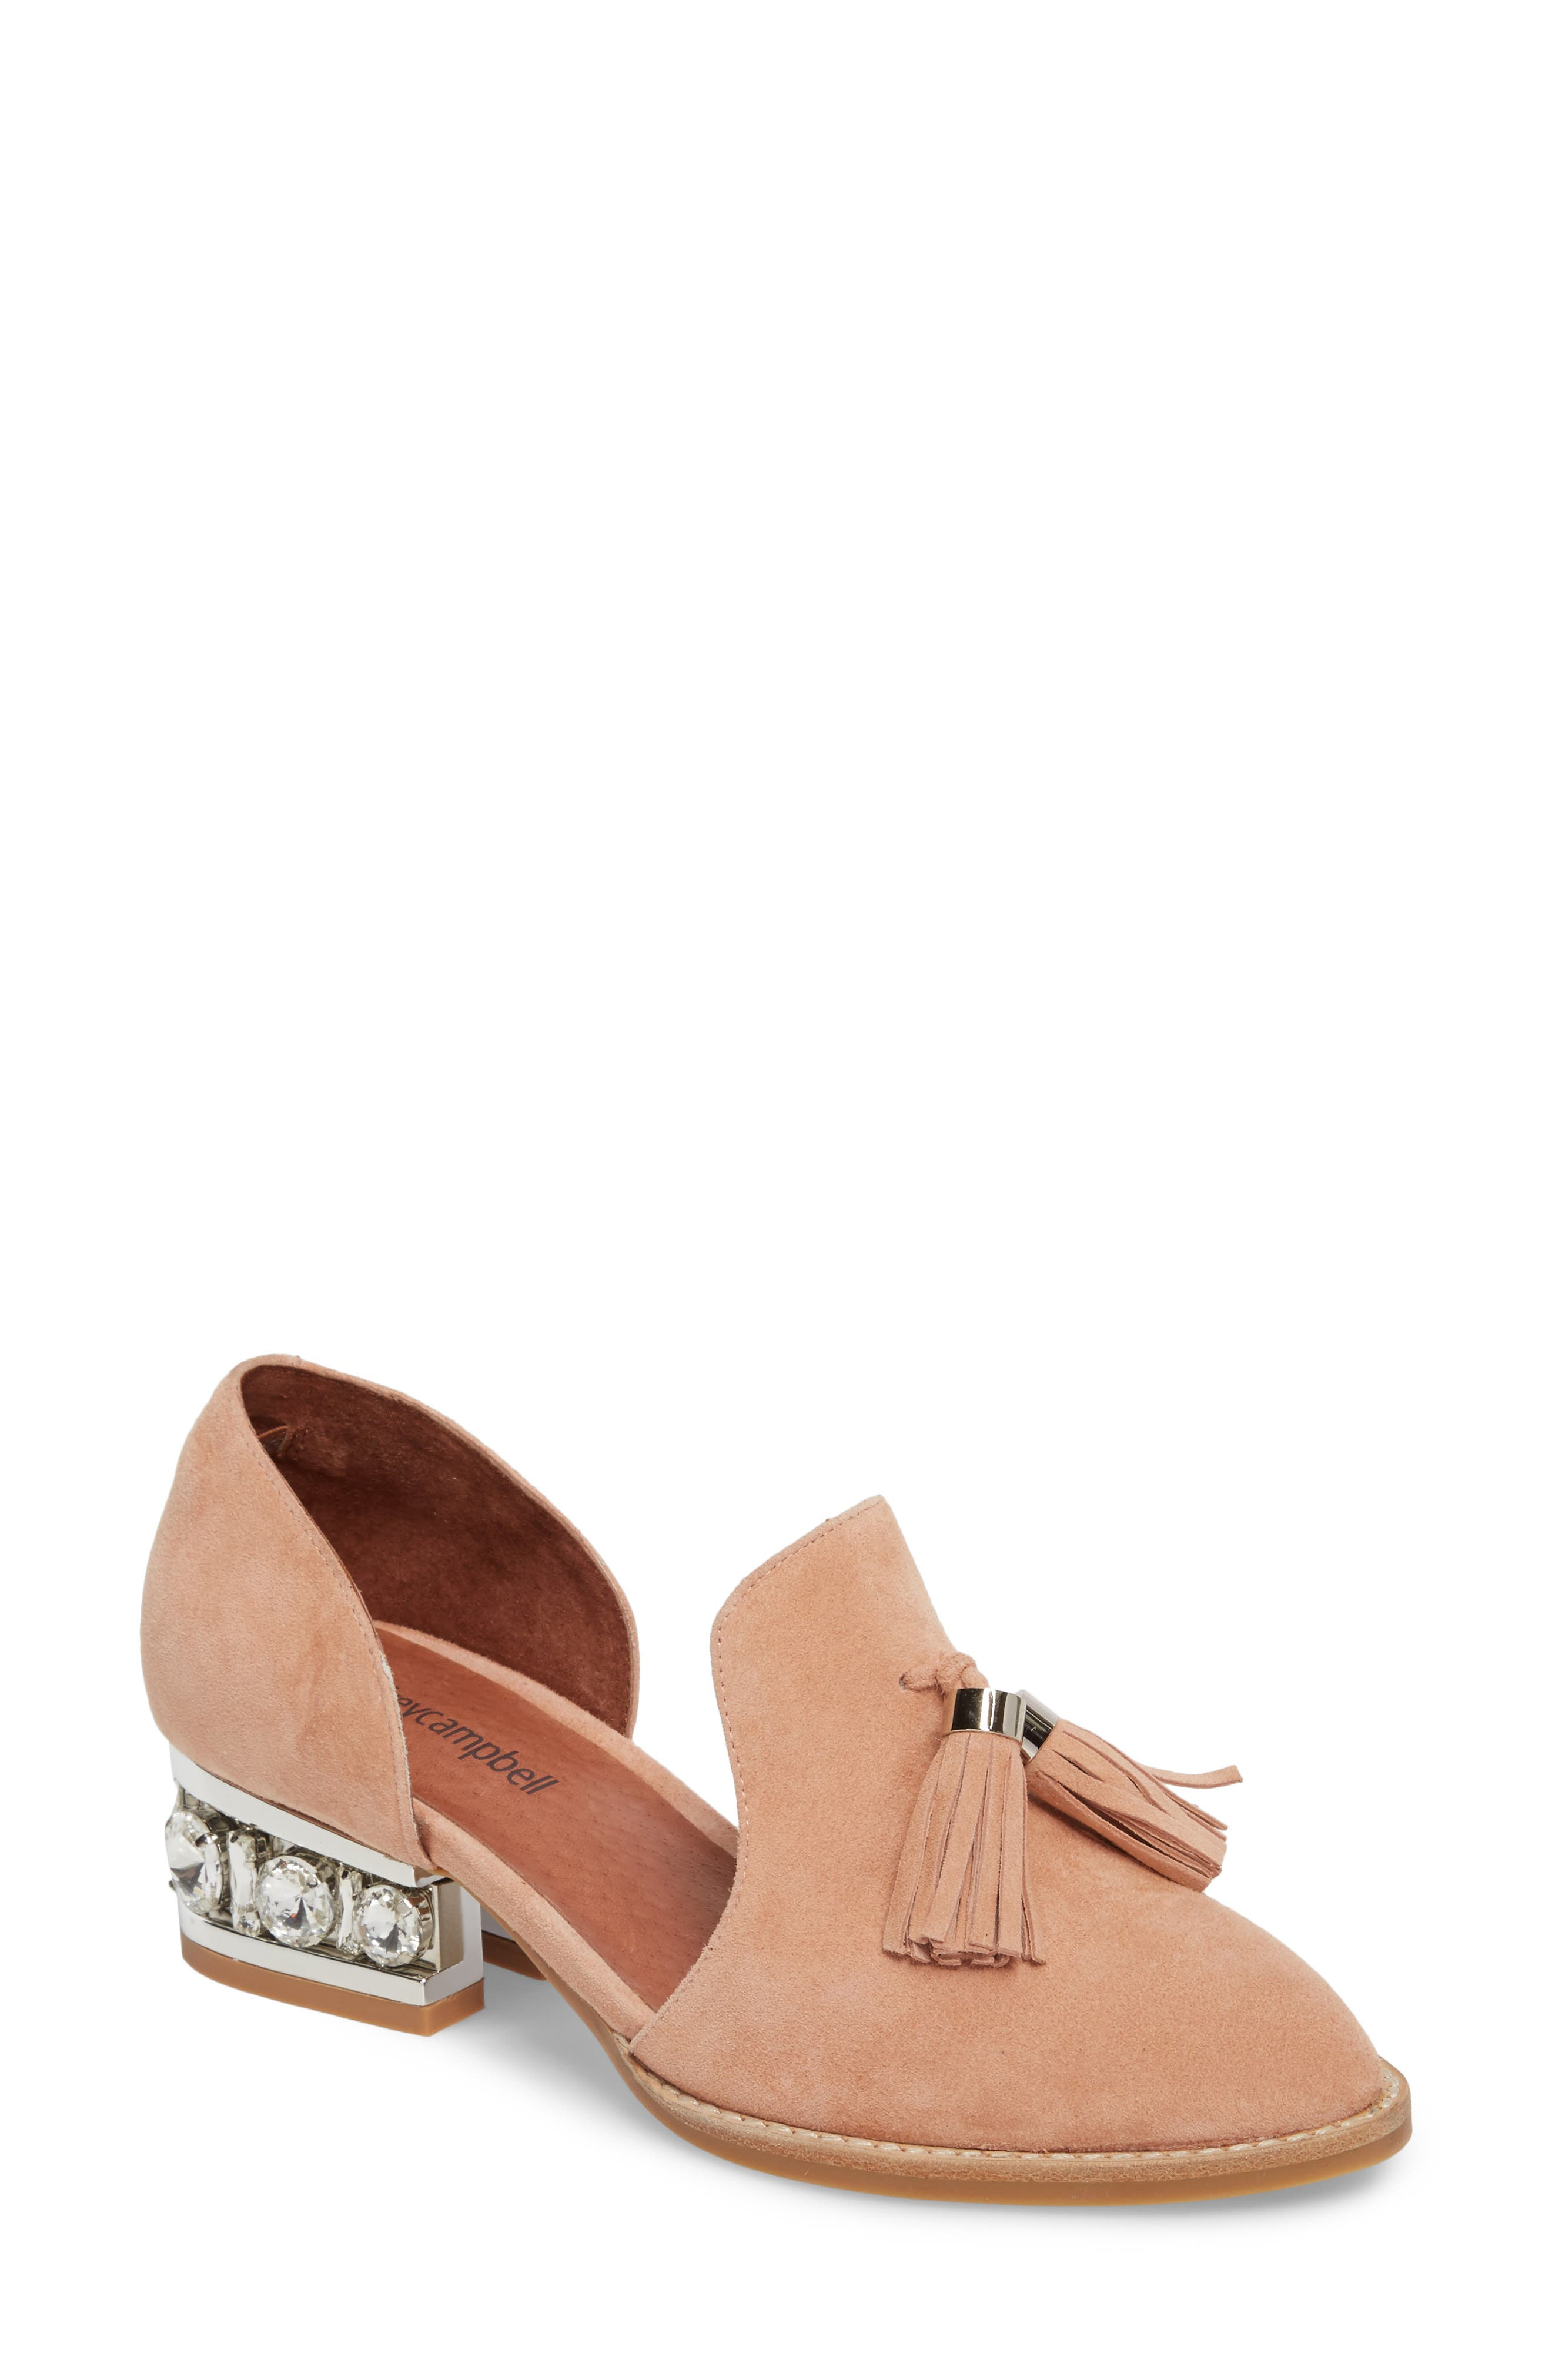 Civil Studded Loafer,                         Main,                         color, Blush/ Silver Suede